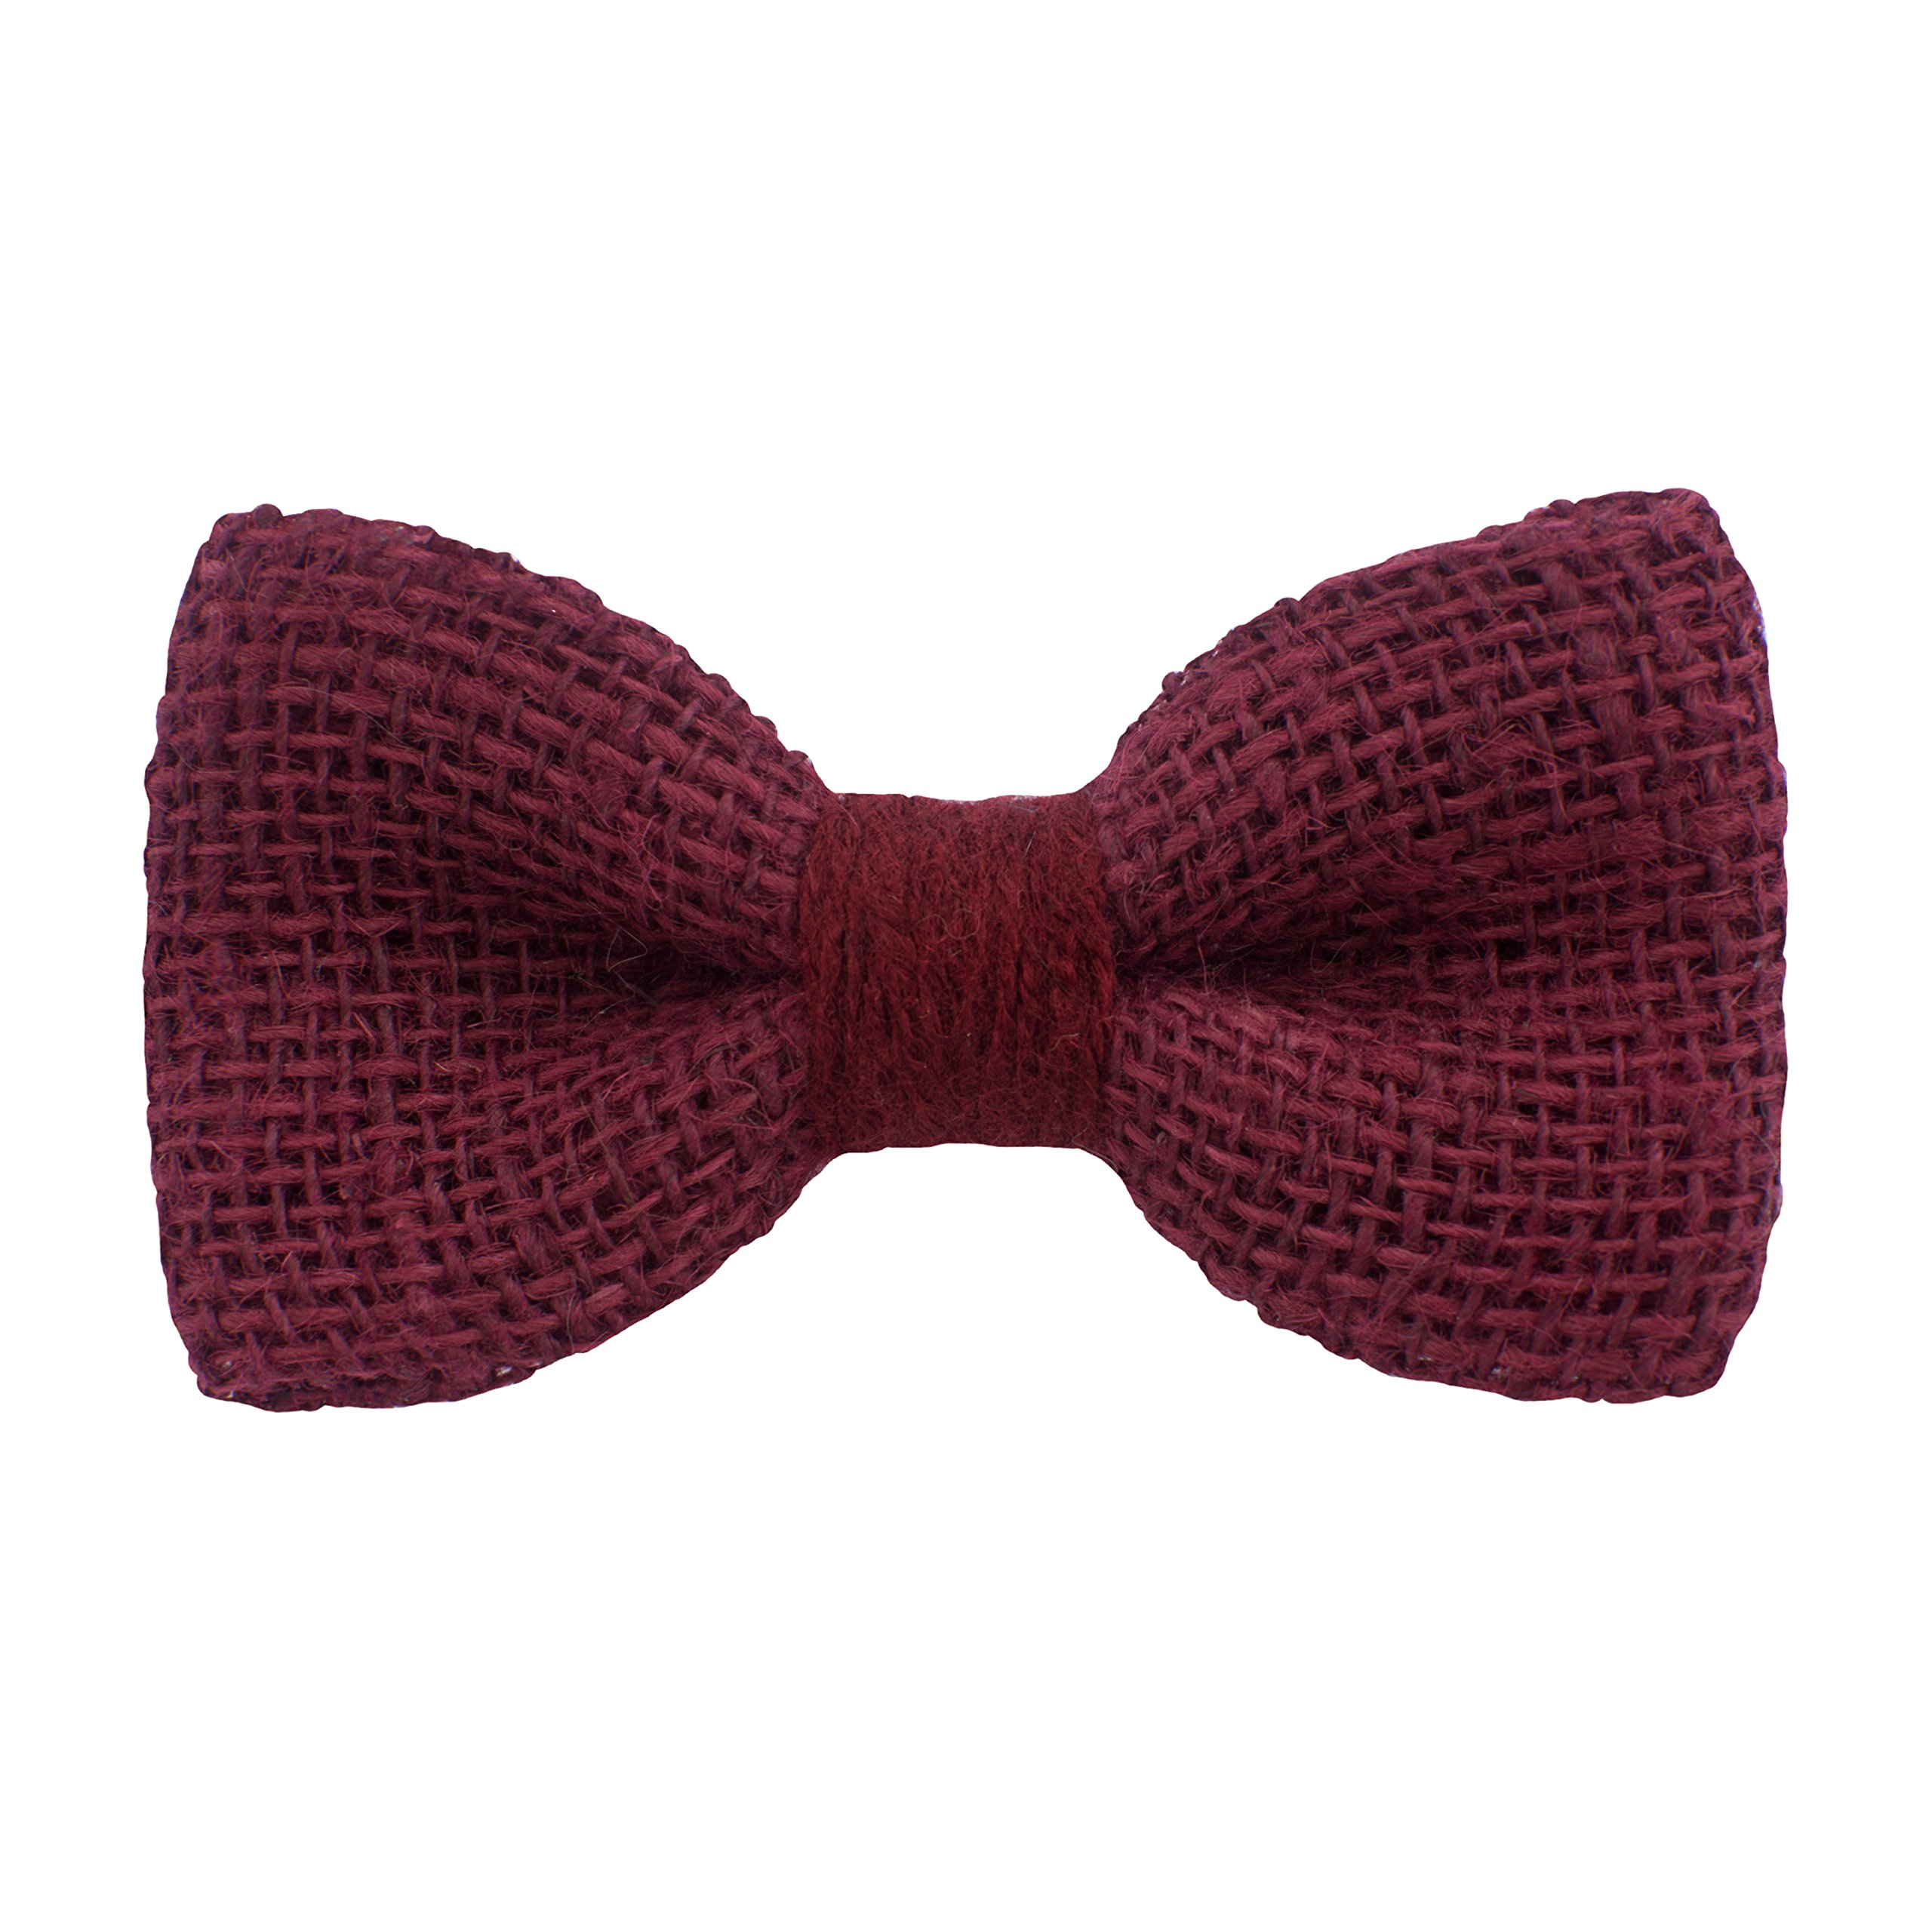 Bow Tie House Rustic Pre-Tied Bow Tie in 100% Burlap Hessian (Small, Dark Red)